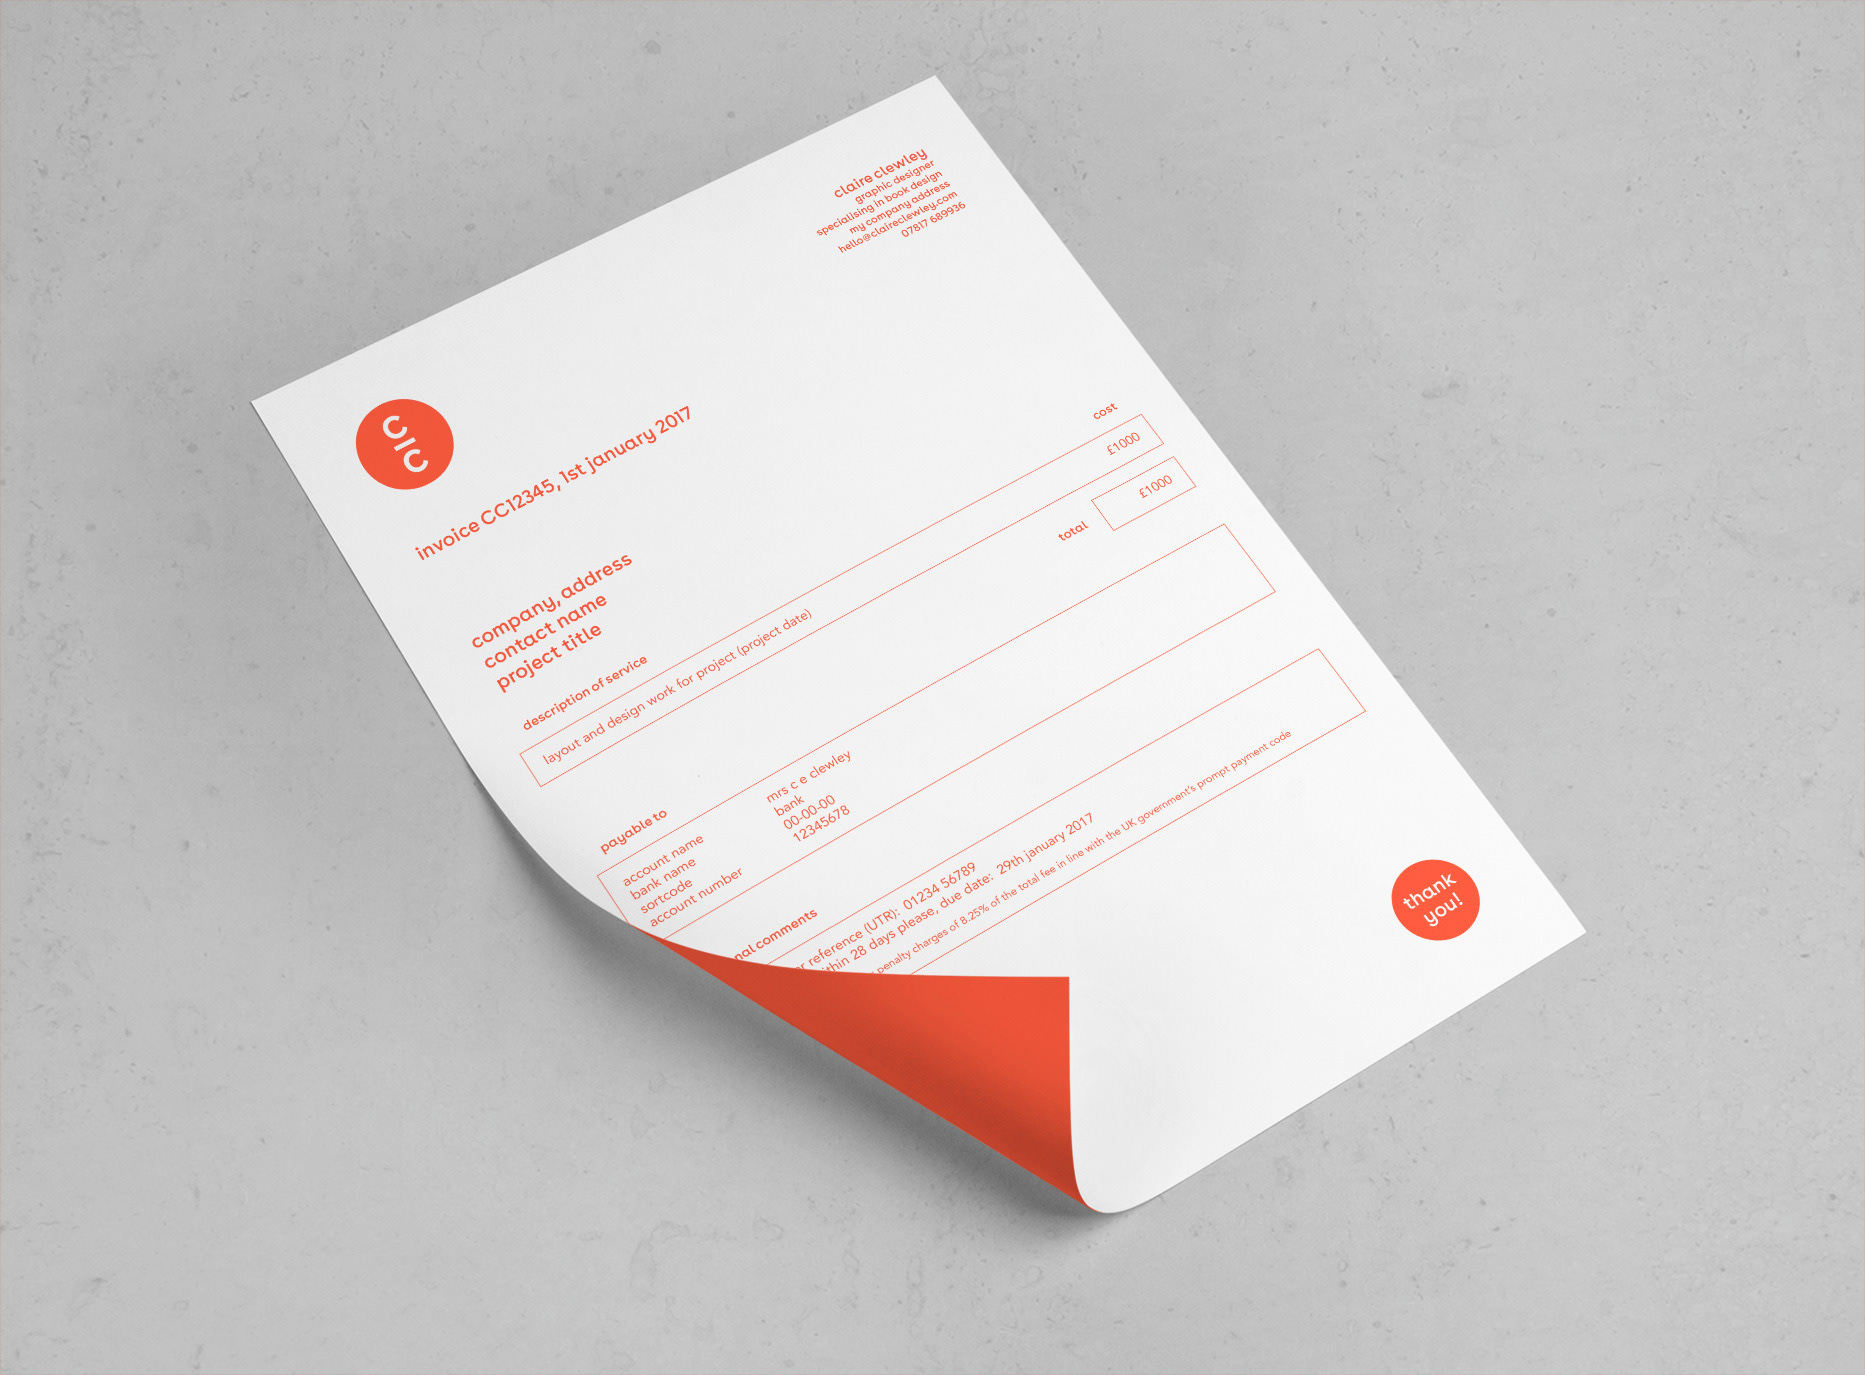 Claire clewley branding personal logo portrait business cards a4 invoice website colourmoves